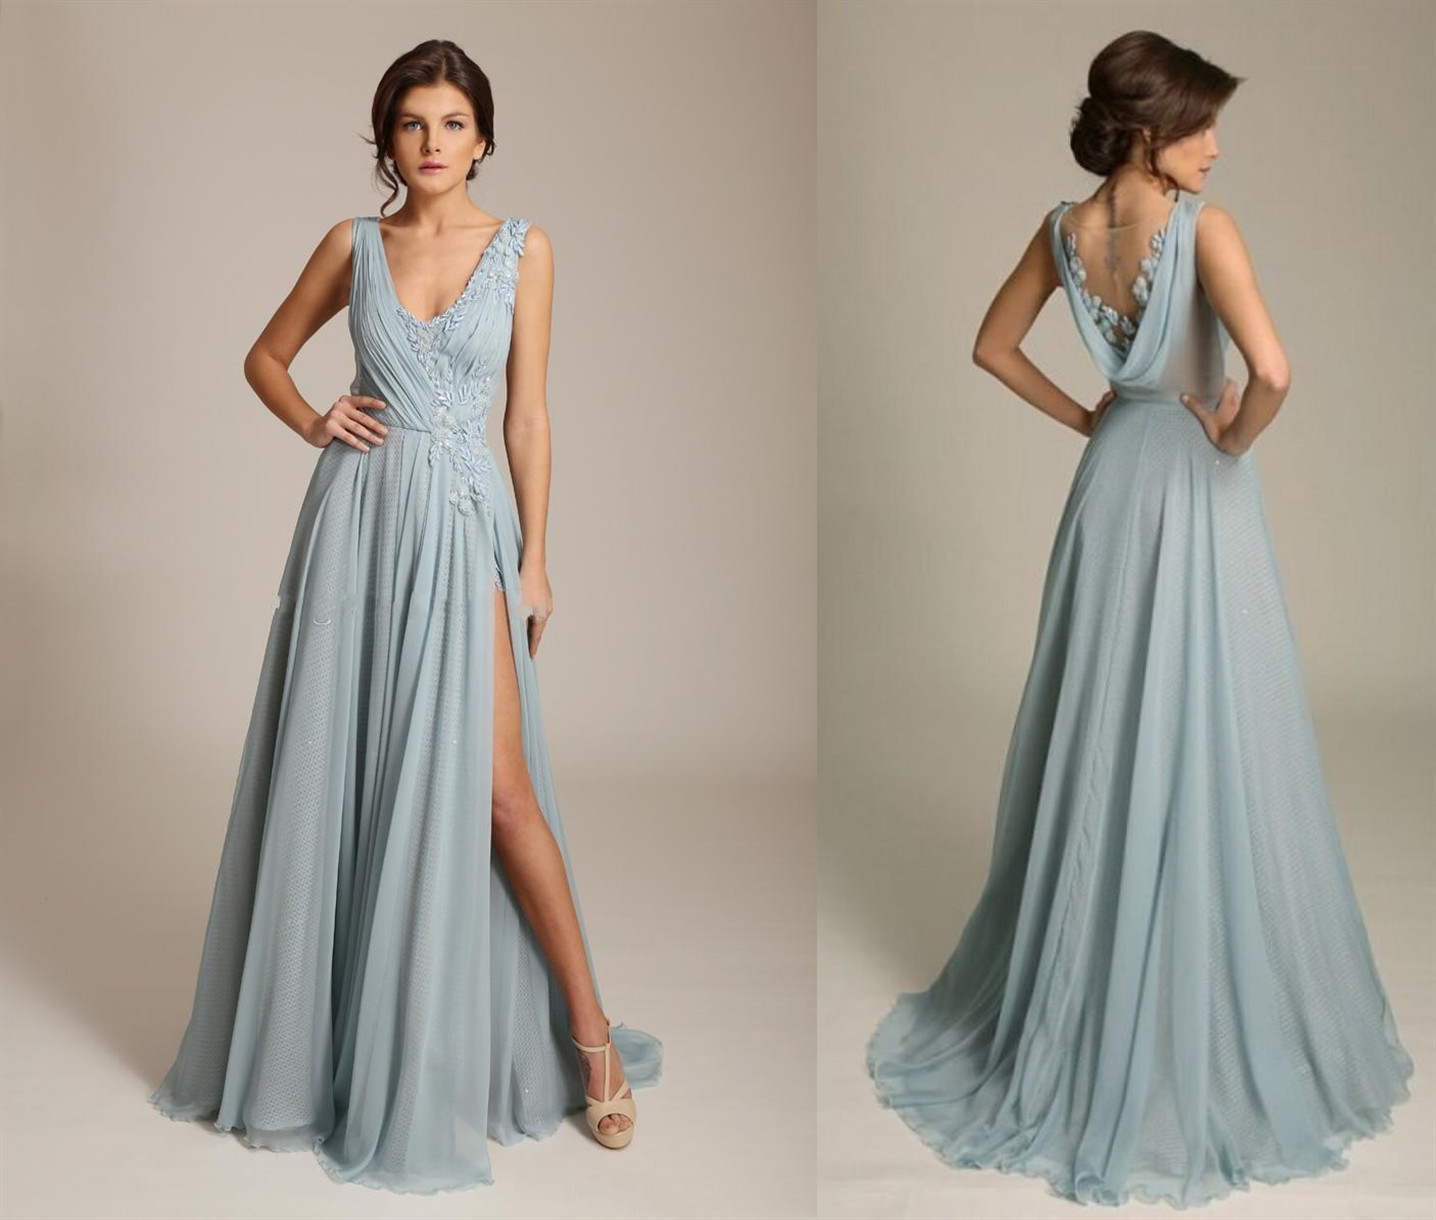 Cowl Back Bridesmaid Dress: Dusty Blue V Neck Chiffon Evening Gown With Side Split